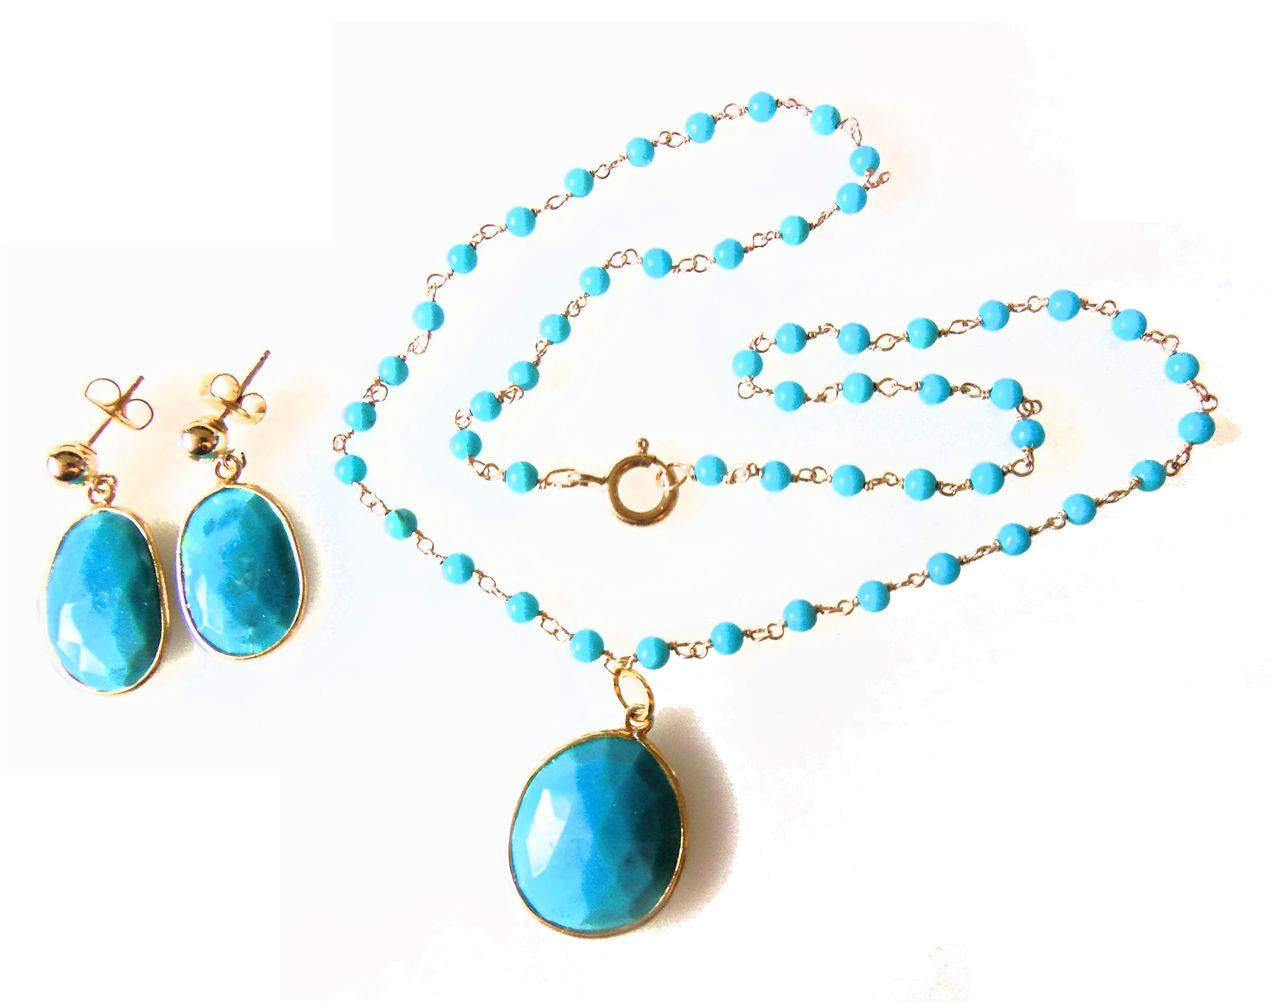 Turquoise pendant on beaded twisted wire necklace.